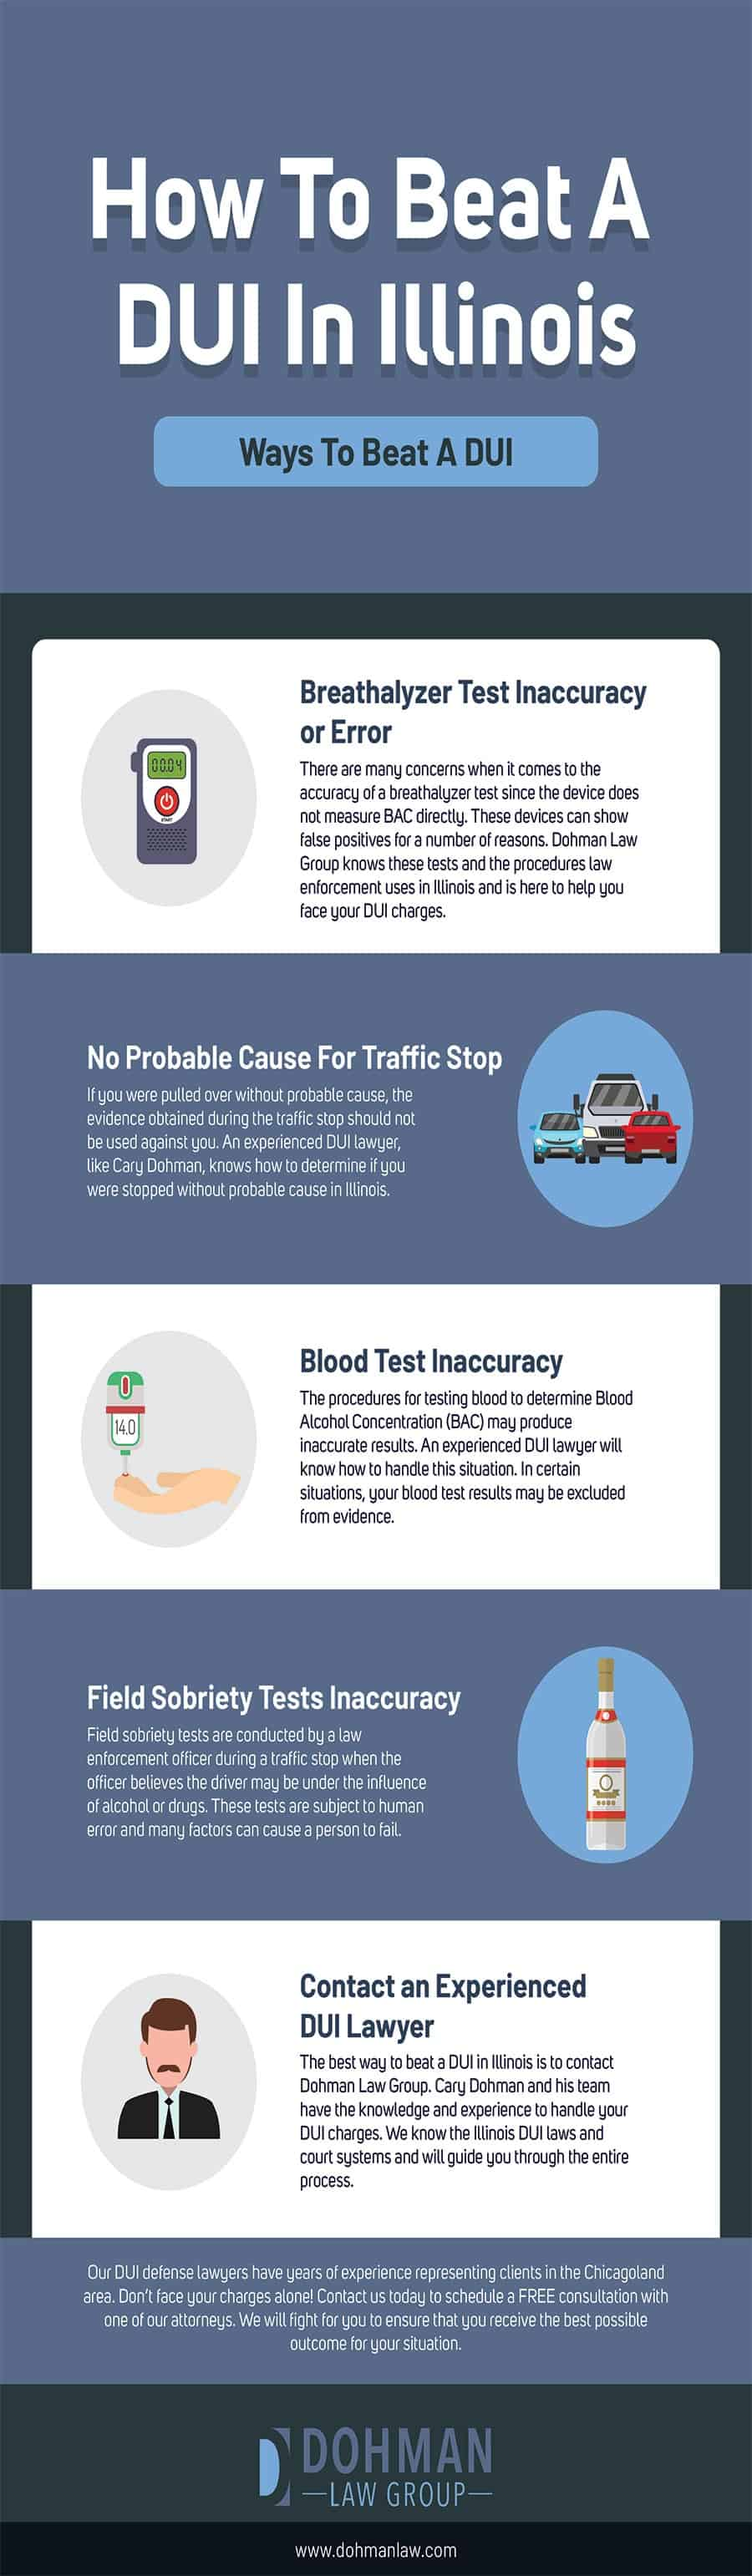 How to beat a DUI in Illinois - Infographic